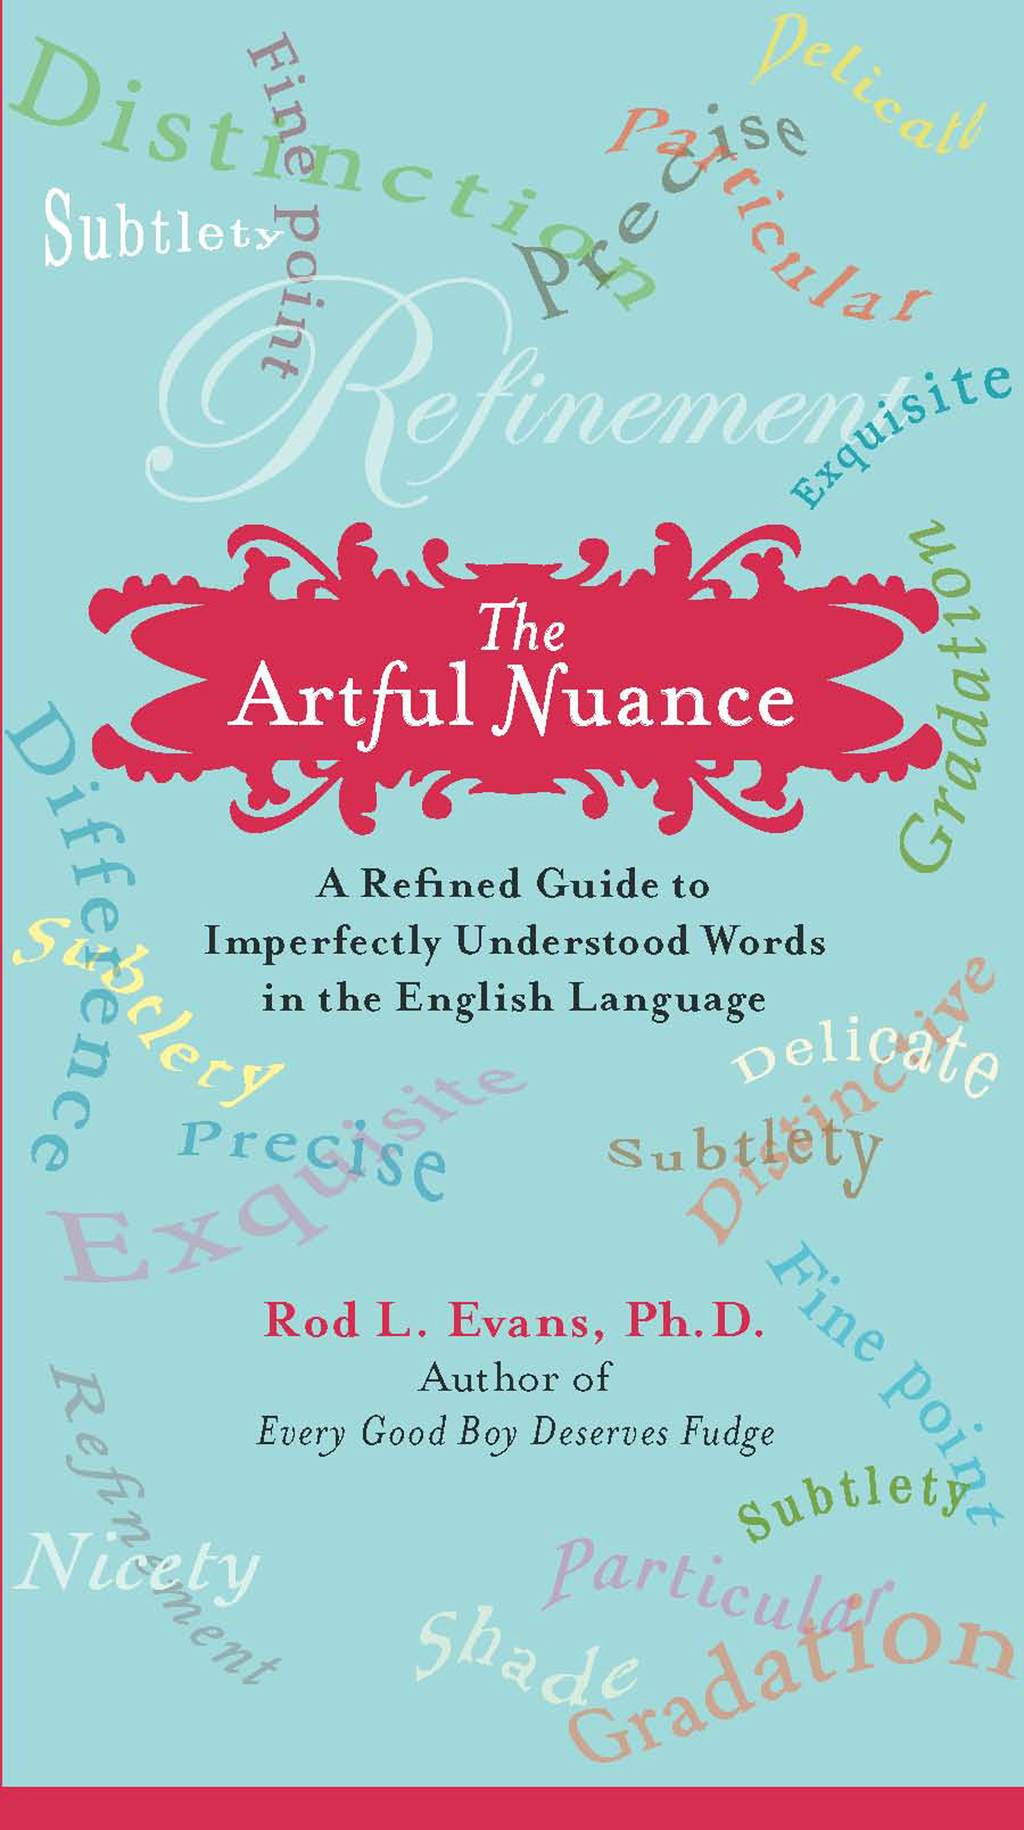 The Artful Nuance By: Rod L. Evans, Ph.D.